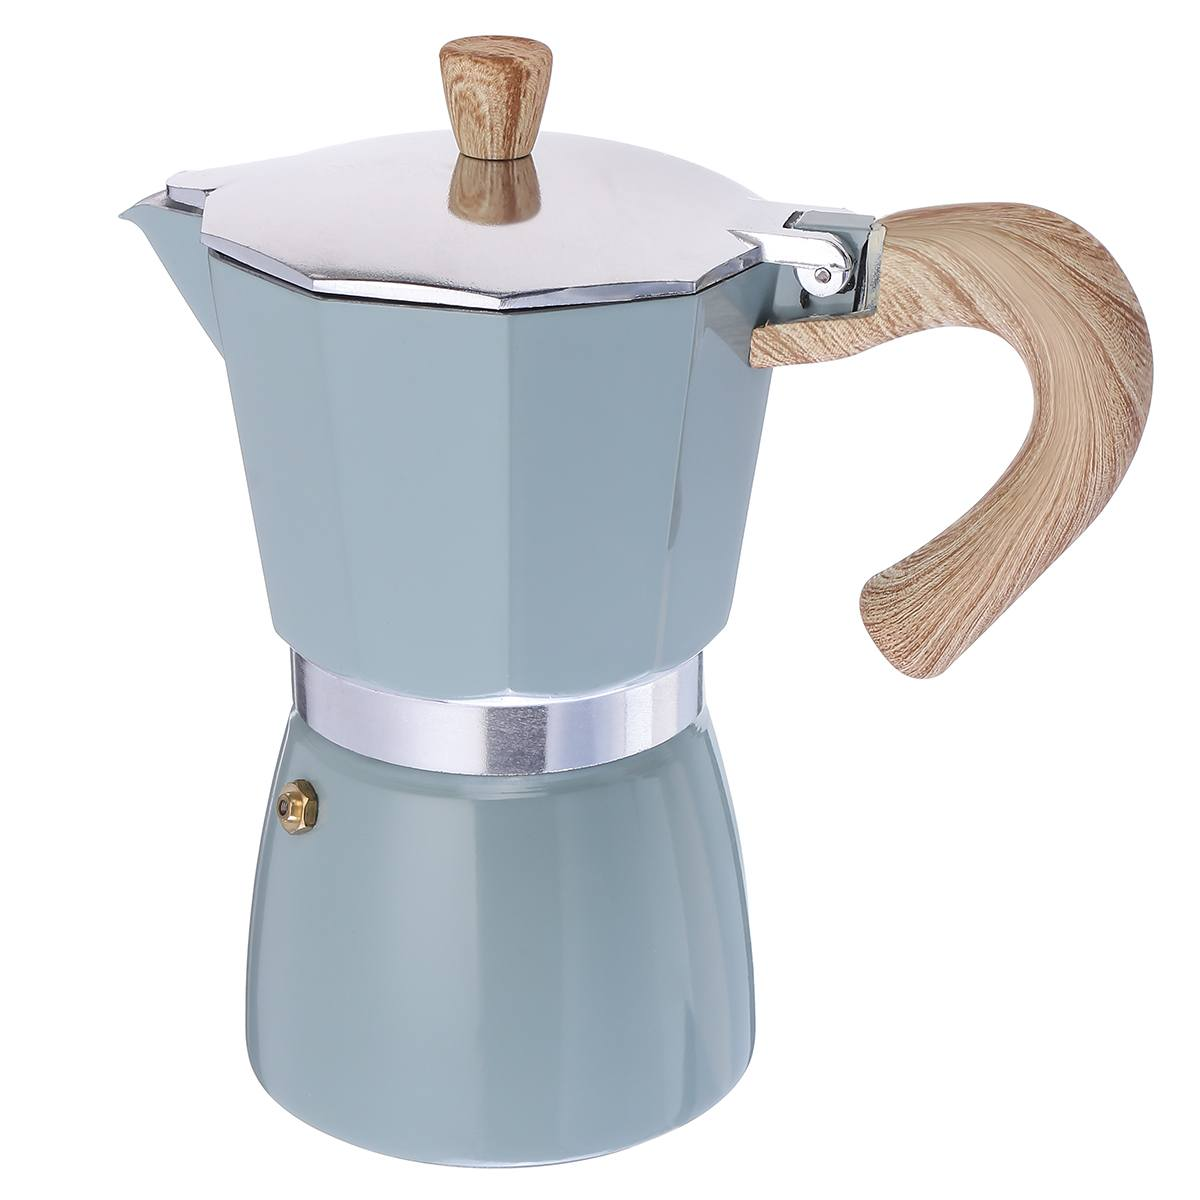 150ml 300ml Coffee Maker Aluminum Mocha Espresso Percolator Pot Coffee Maker Moka Pot Stovetop Coffee Maker